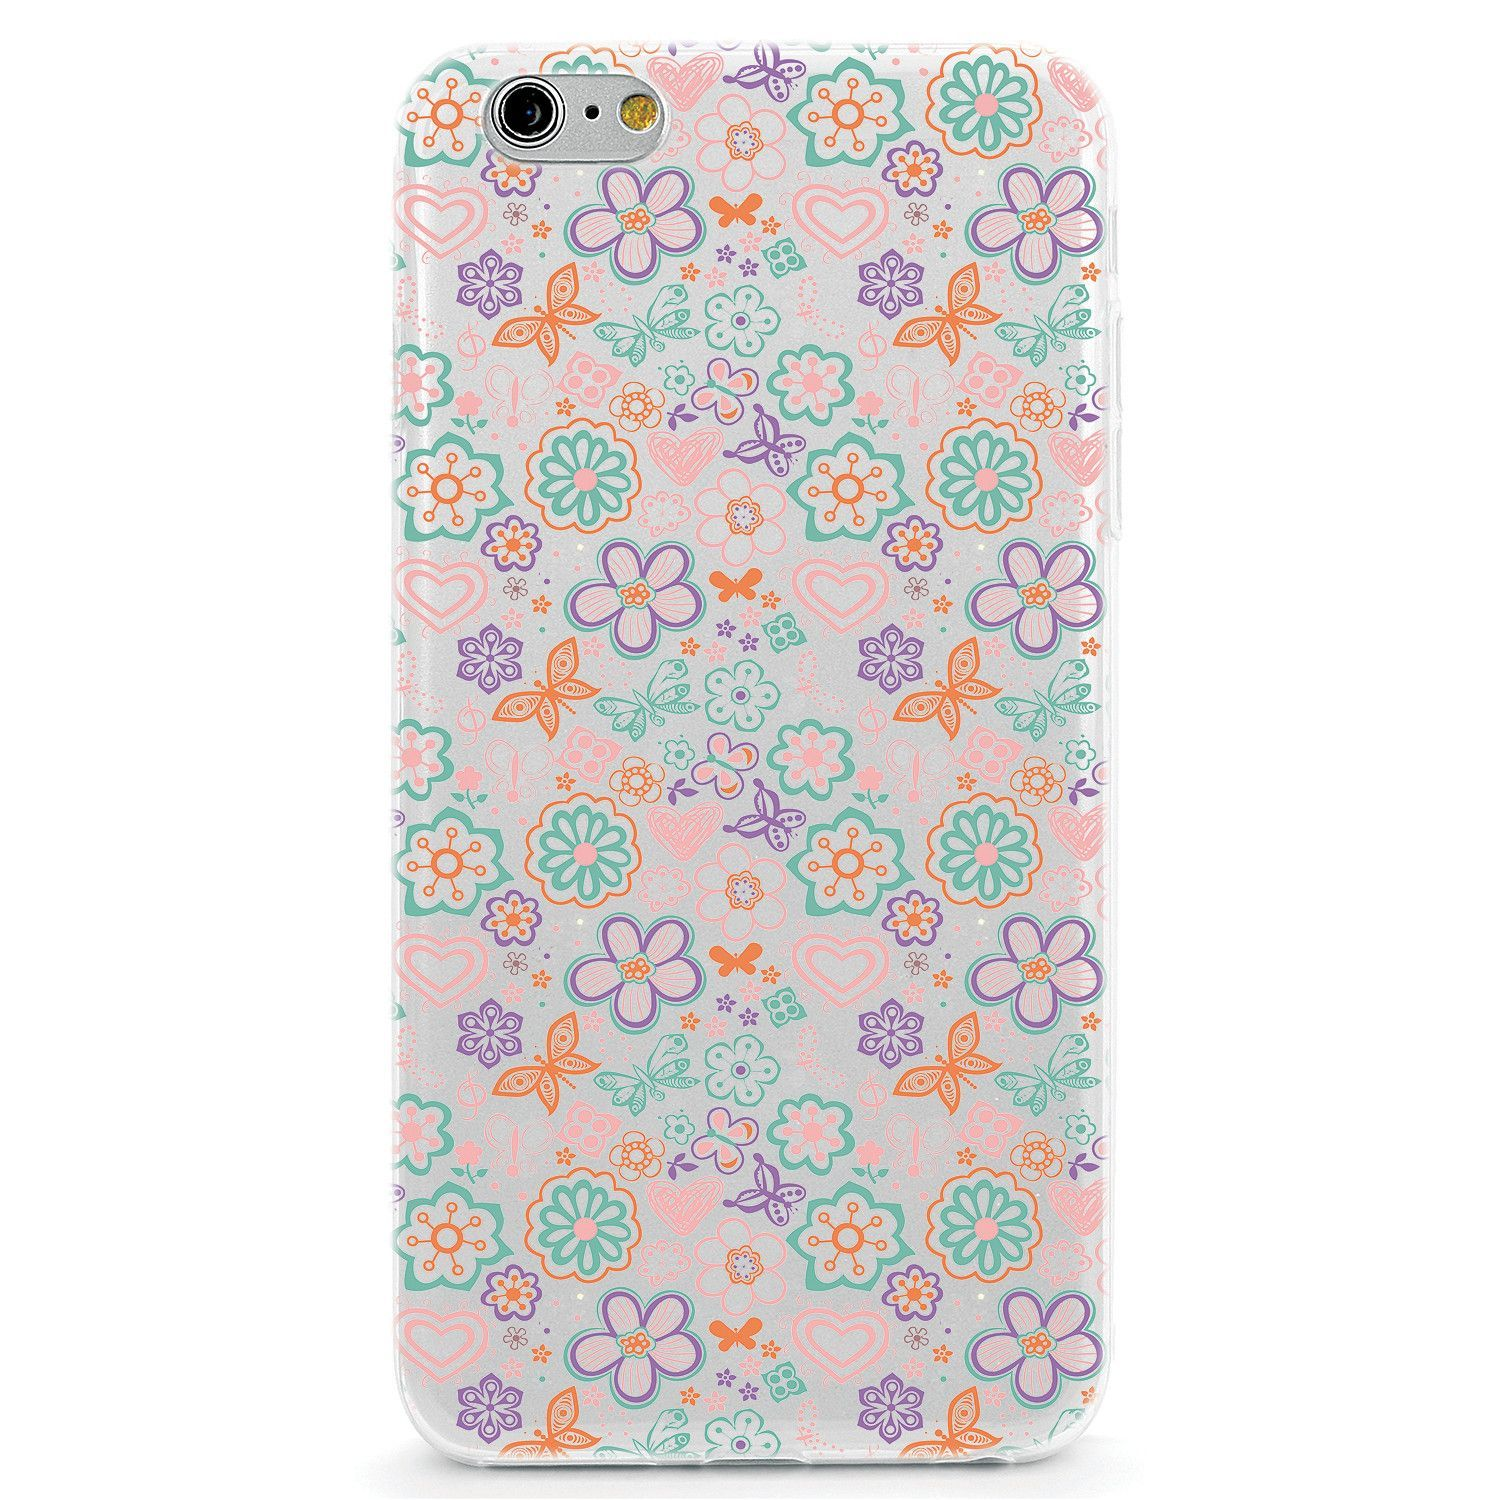 Flowers and Butterfly Pattern